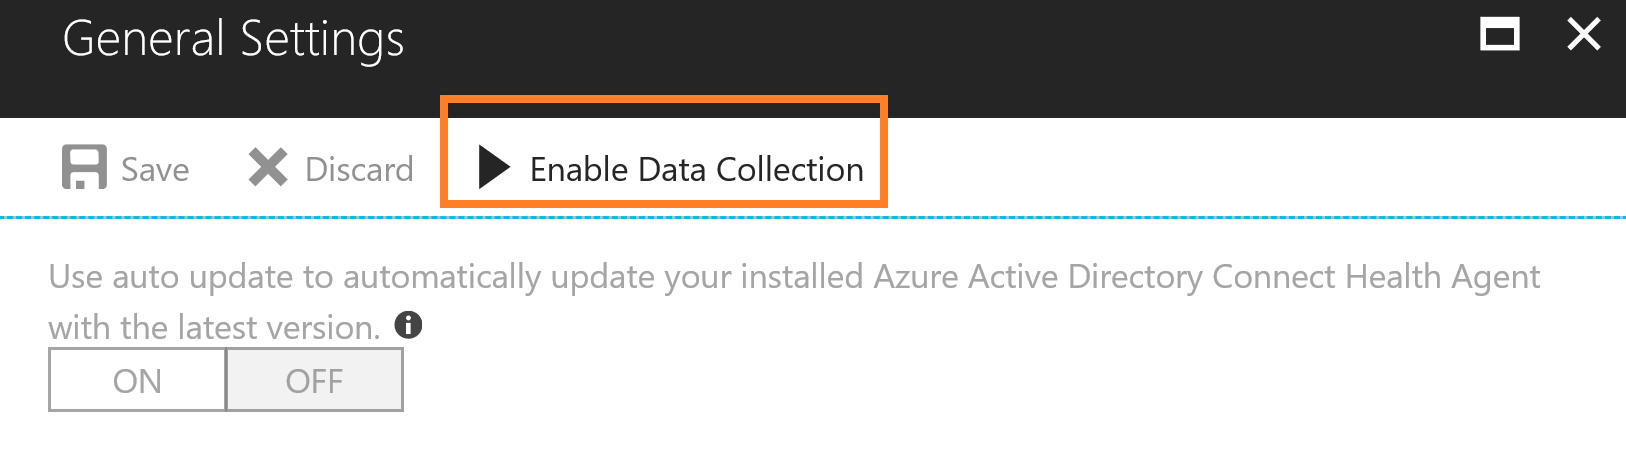 Azure AD Connect Health and User Privacy | Microsoft Docs